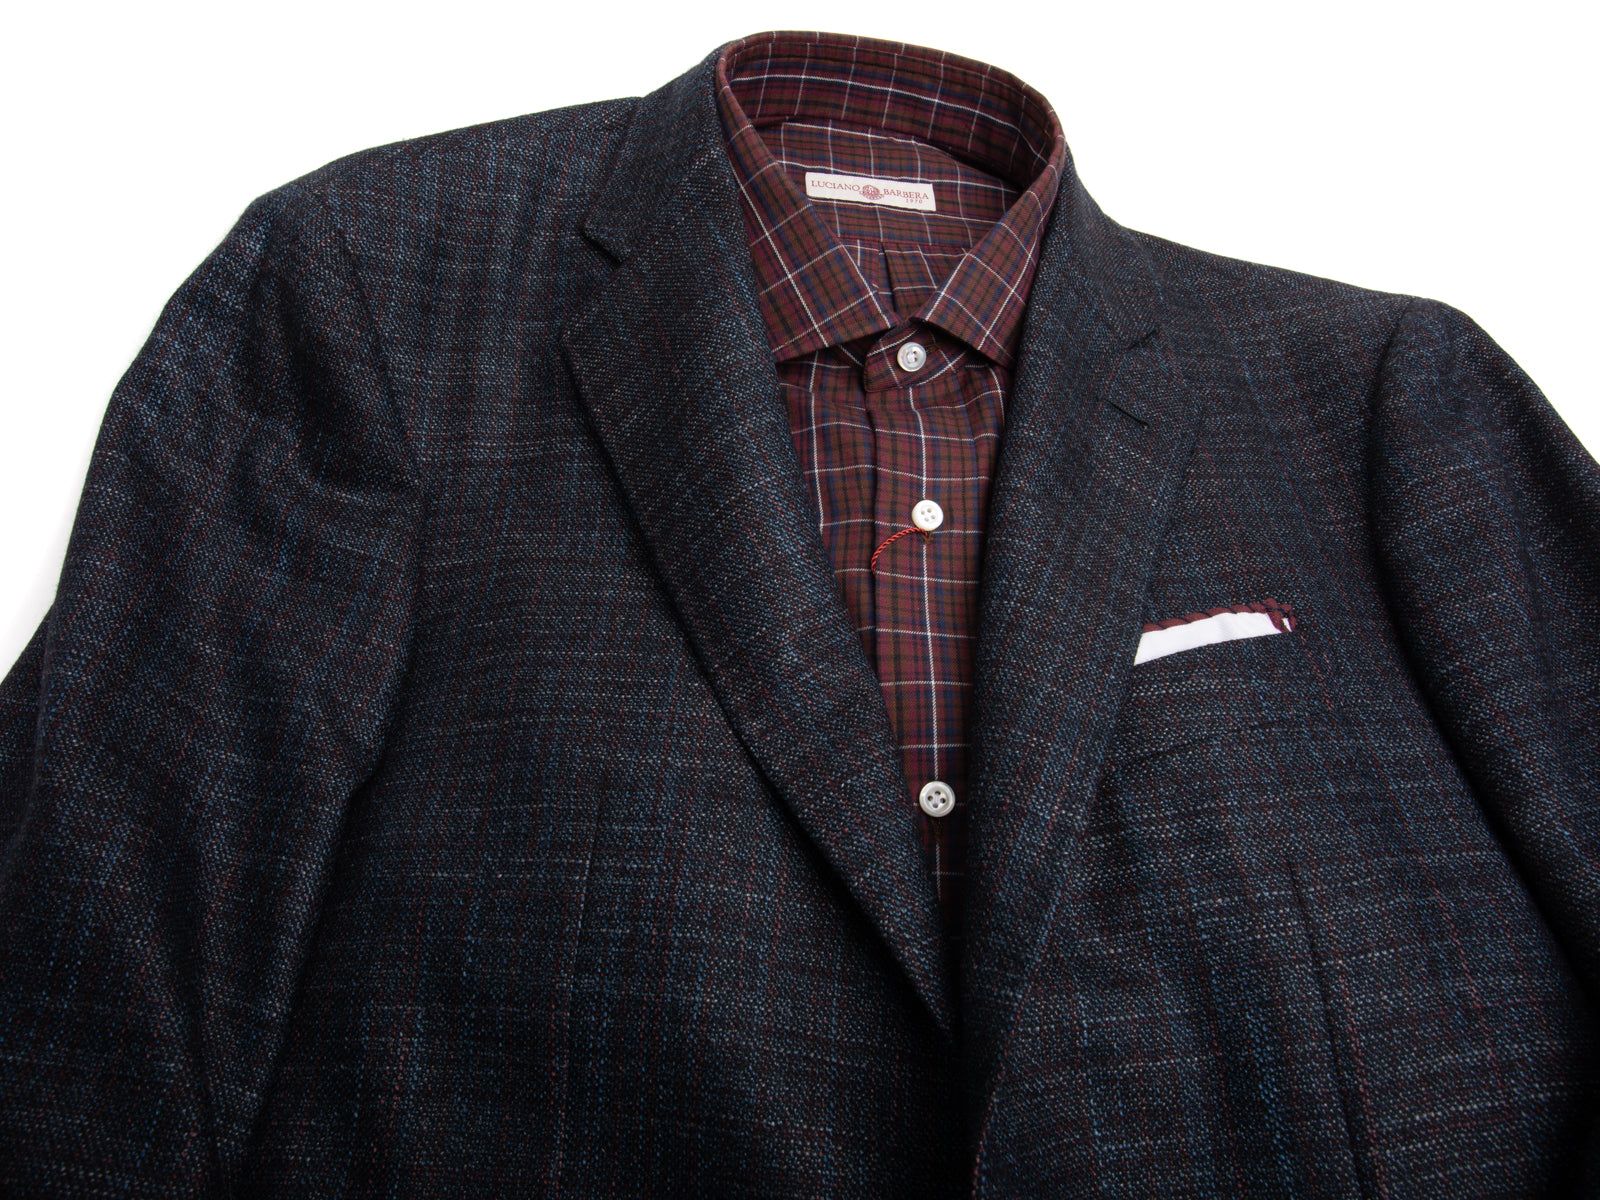 Super 130's Four Season Plaid